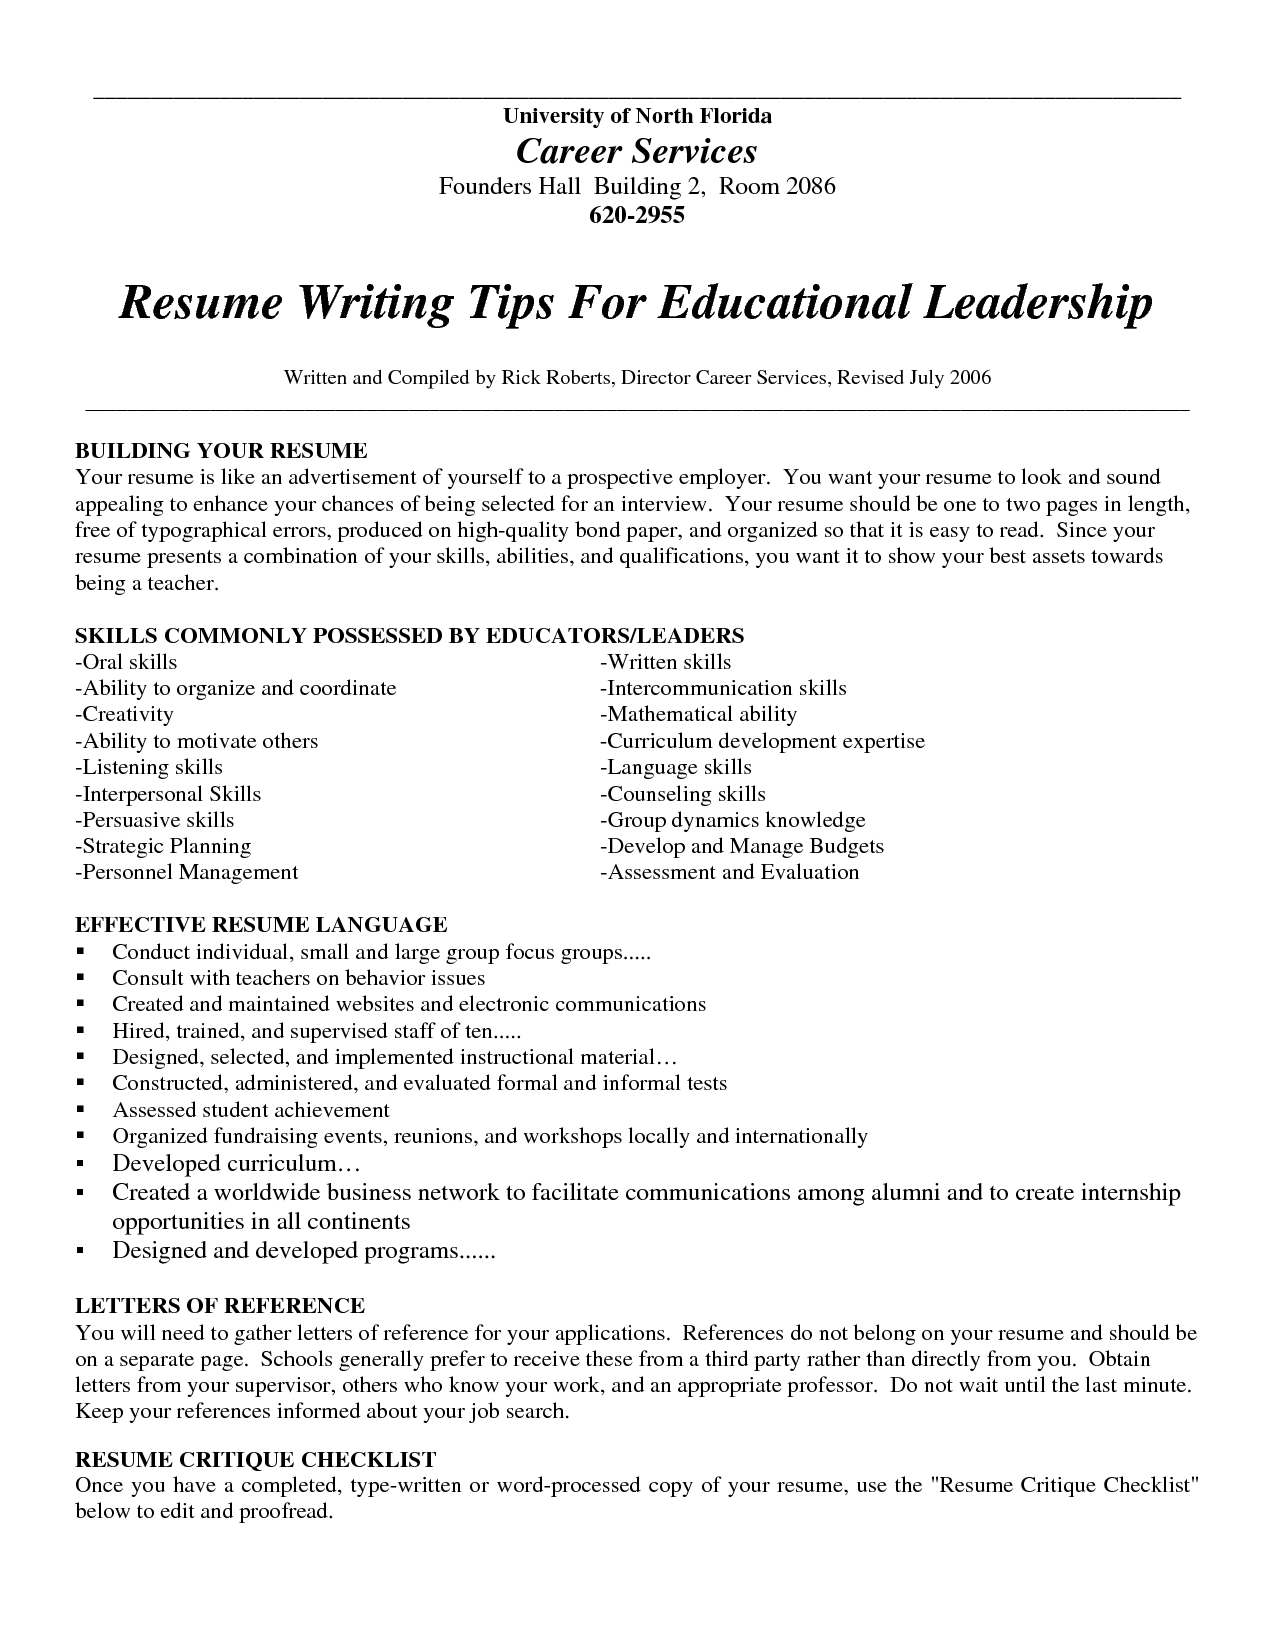 Diy resume writing